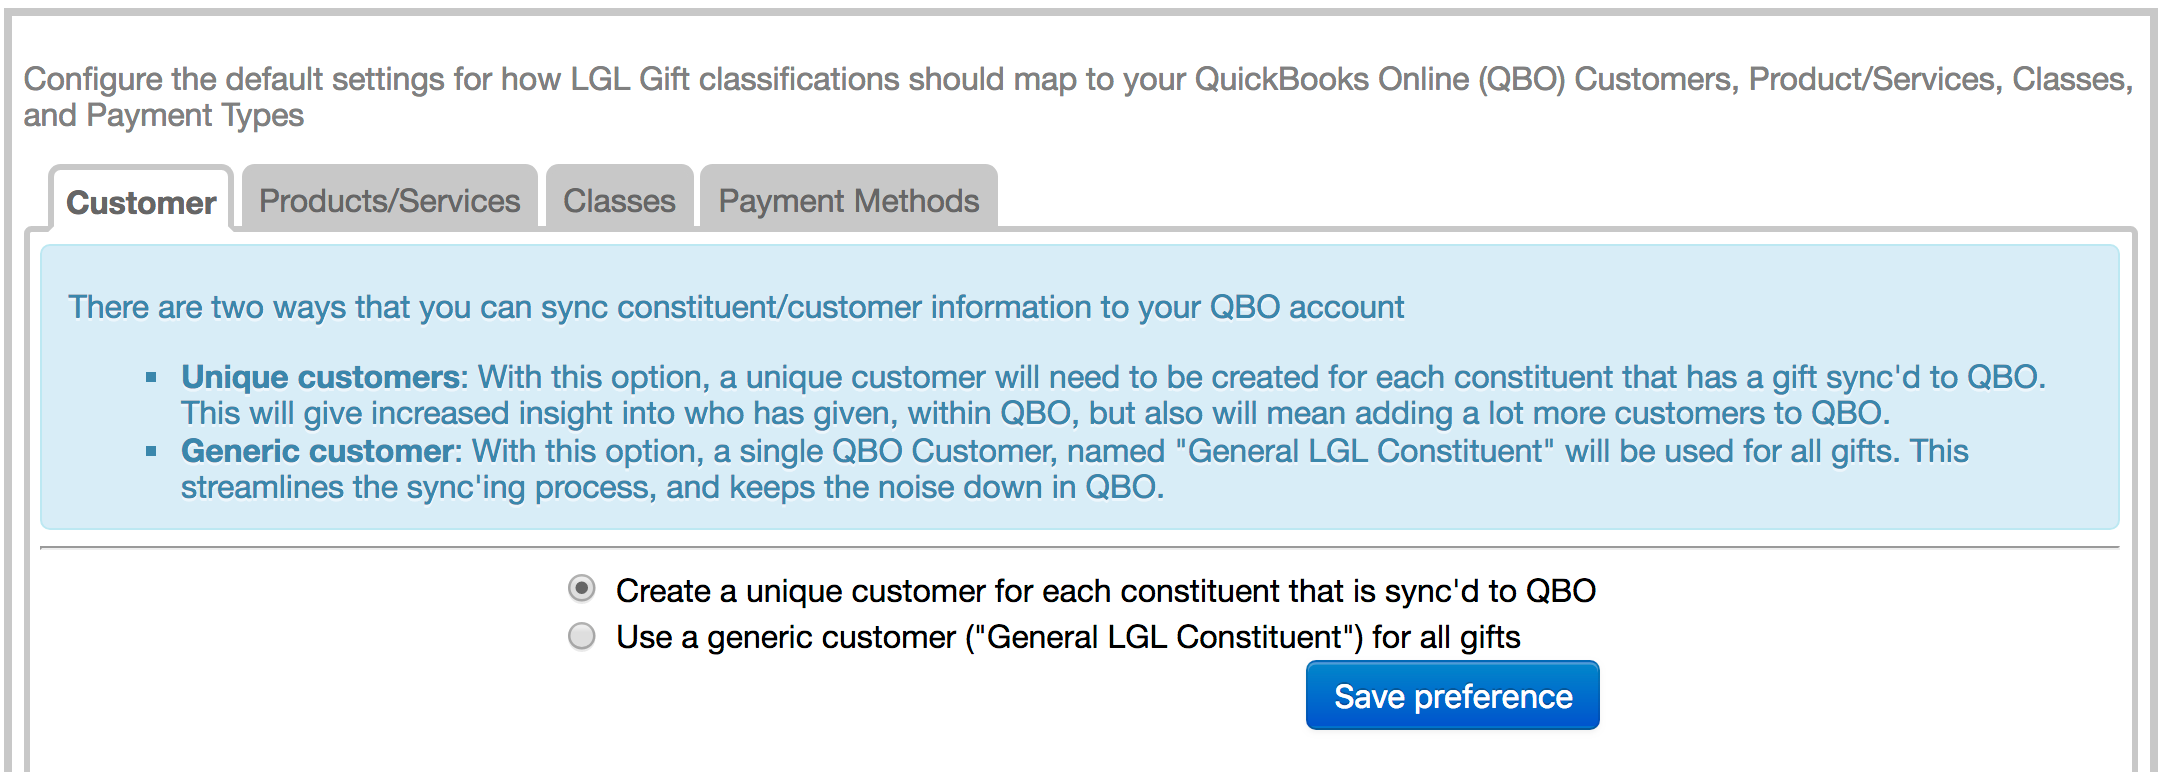 QuickBooks integration: Sync gifts from LGL to your QB